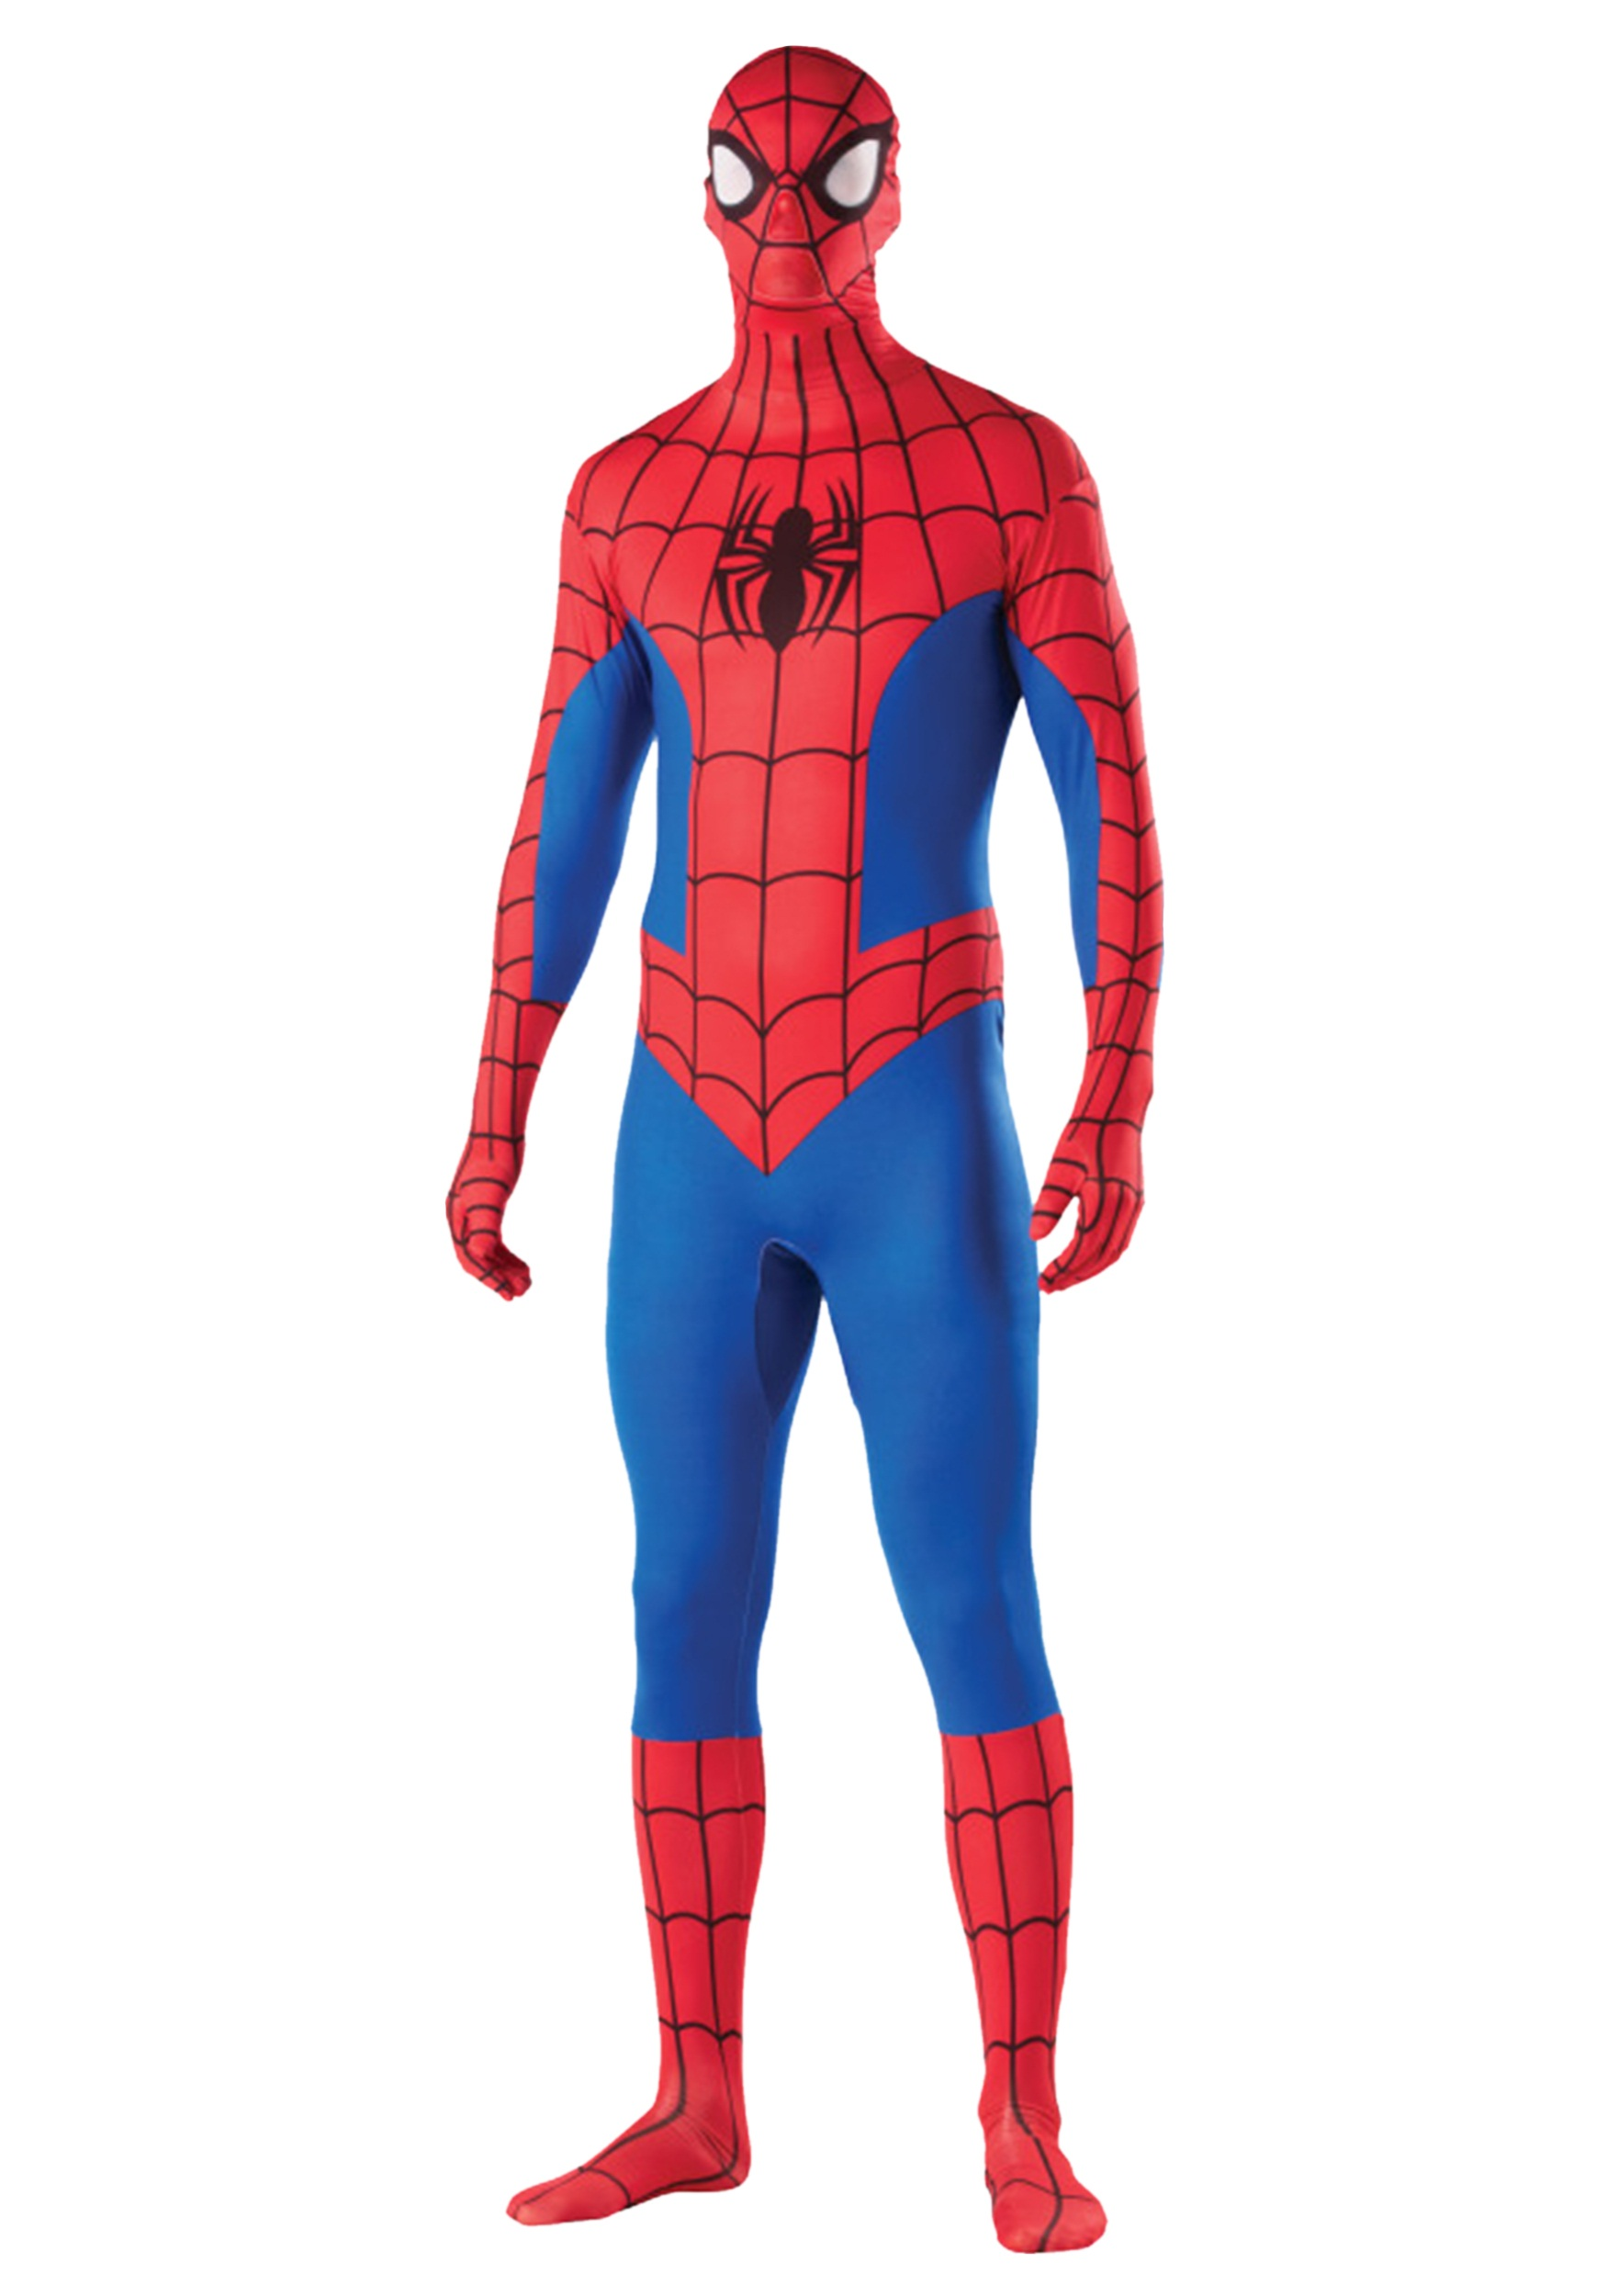 Amazing Spider-Man 2 Second Skin Suit RU880824